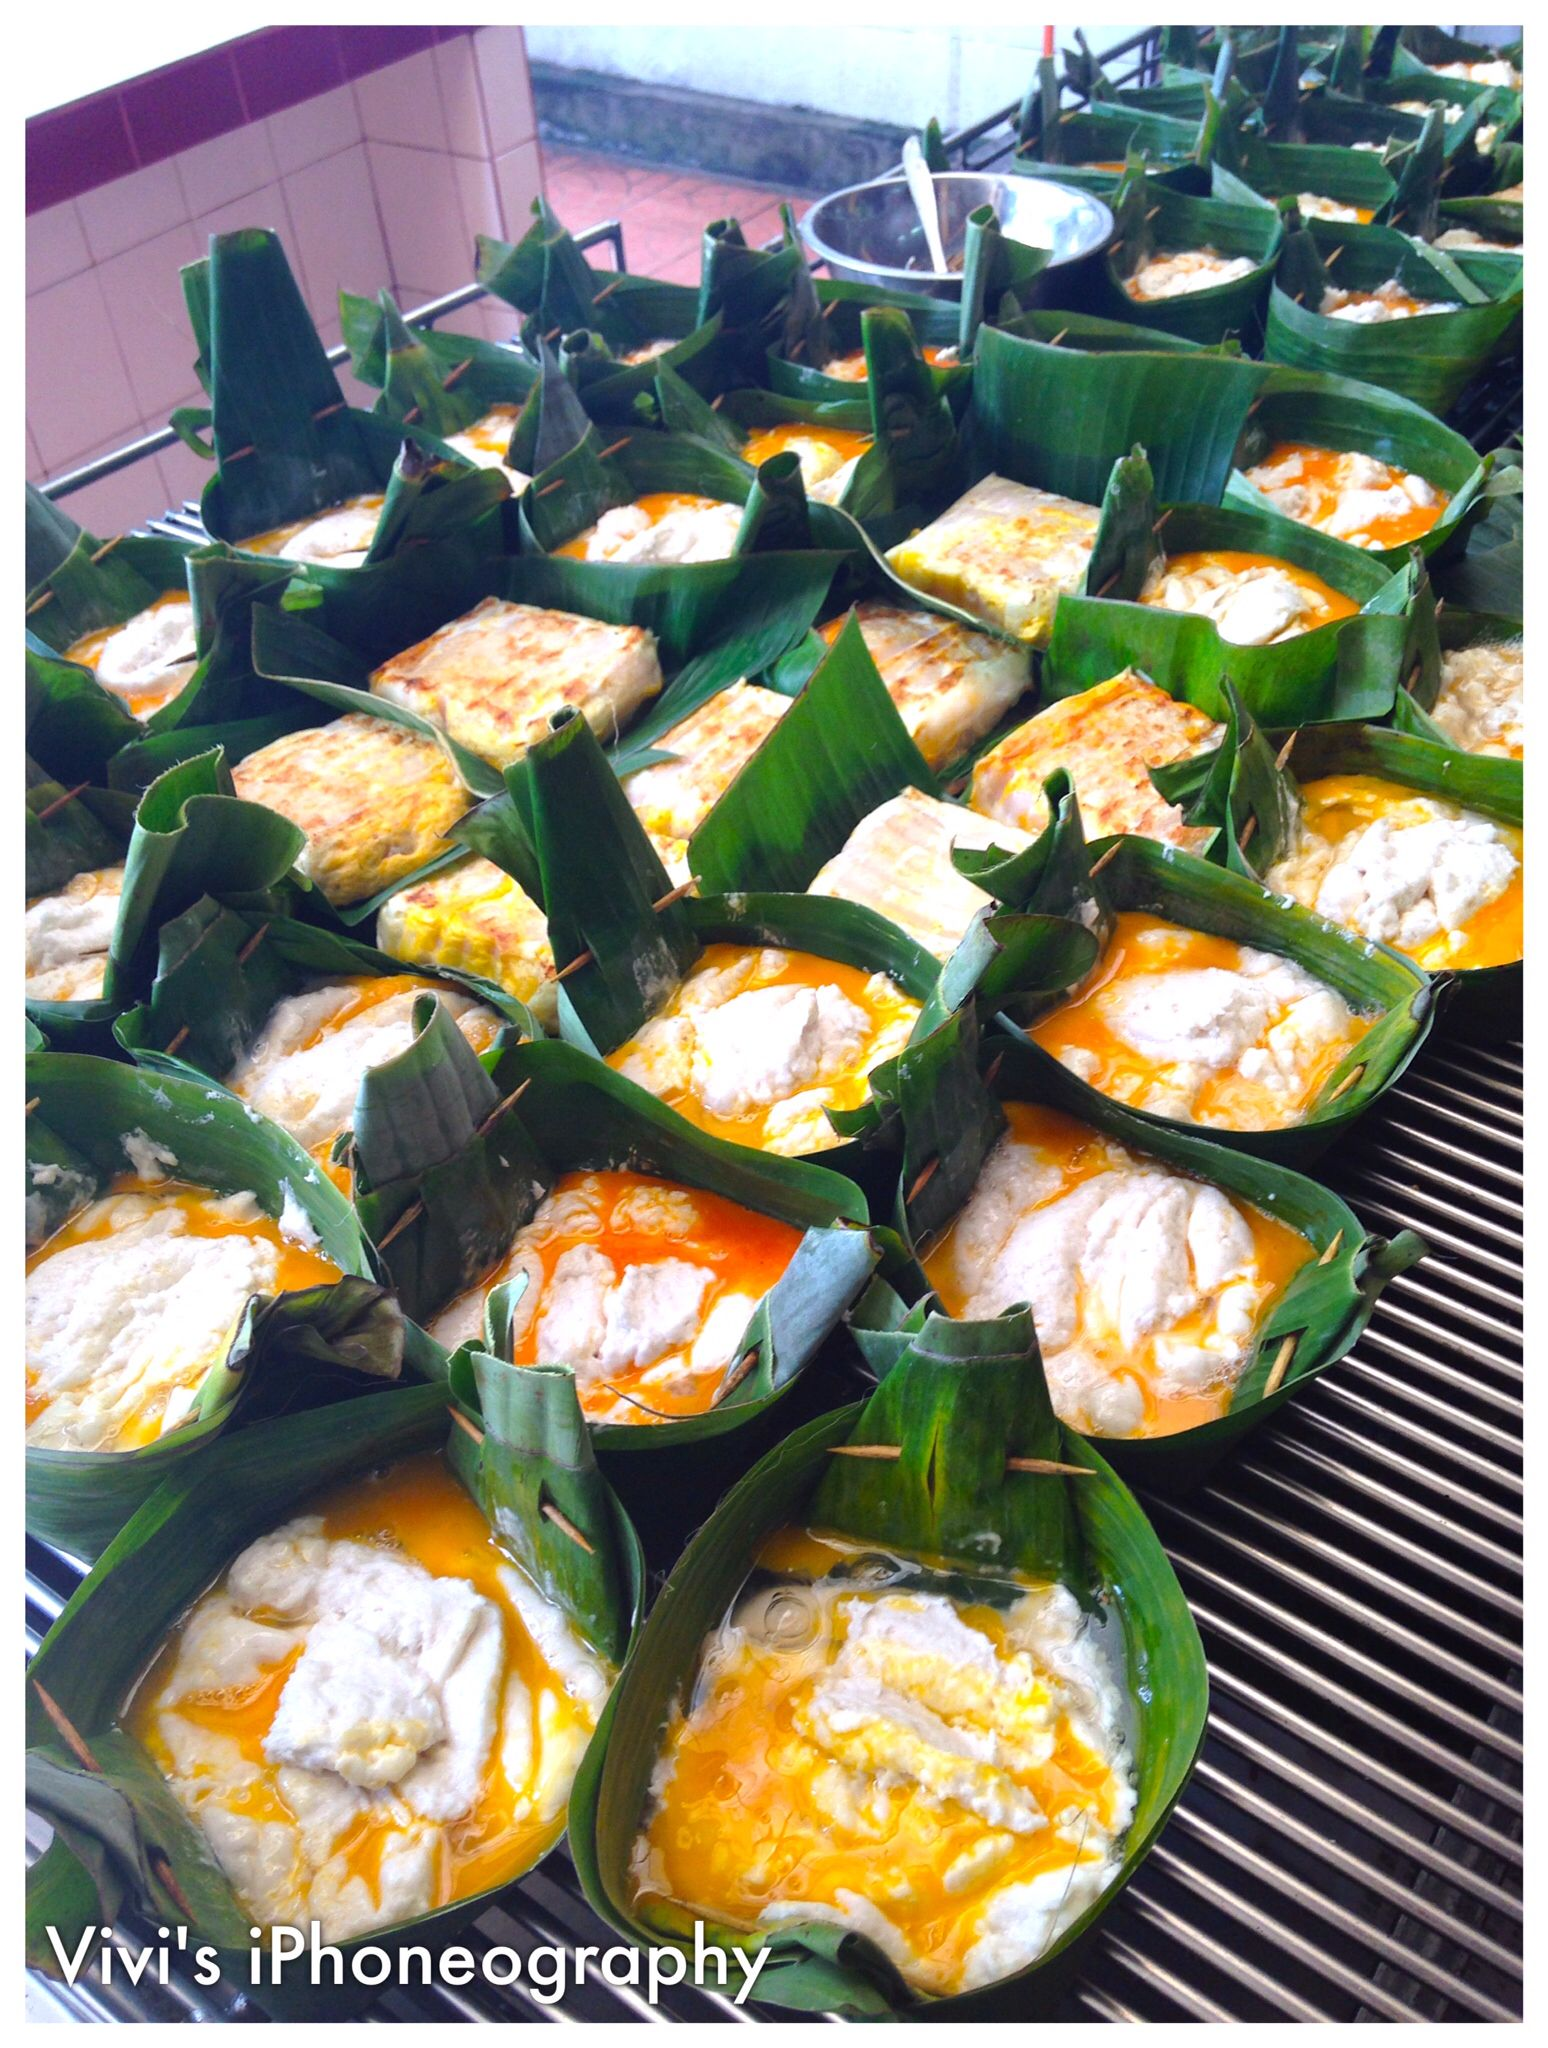 Pempek Bakar In Palembang Indonesia Is Uniquely Kacang Ayu 250gram By Bali Trademark Cuisine It A Kind Of Fish Cake This One Cook On Grill And Mix With